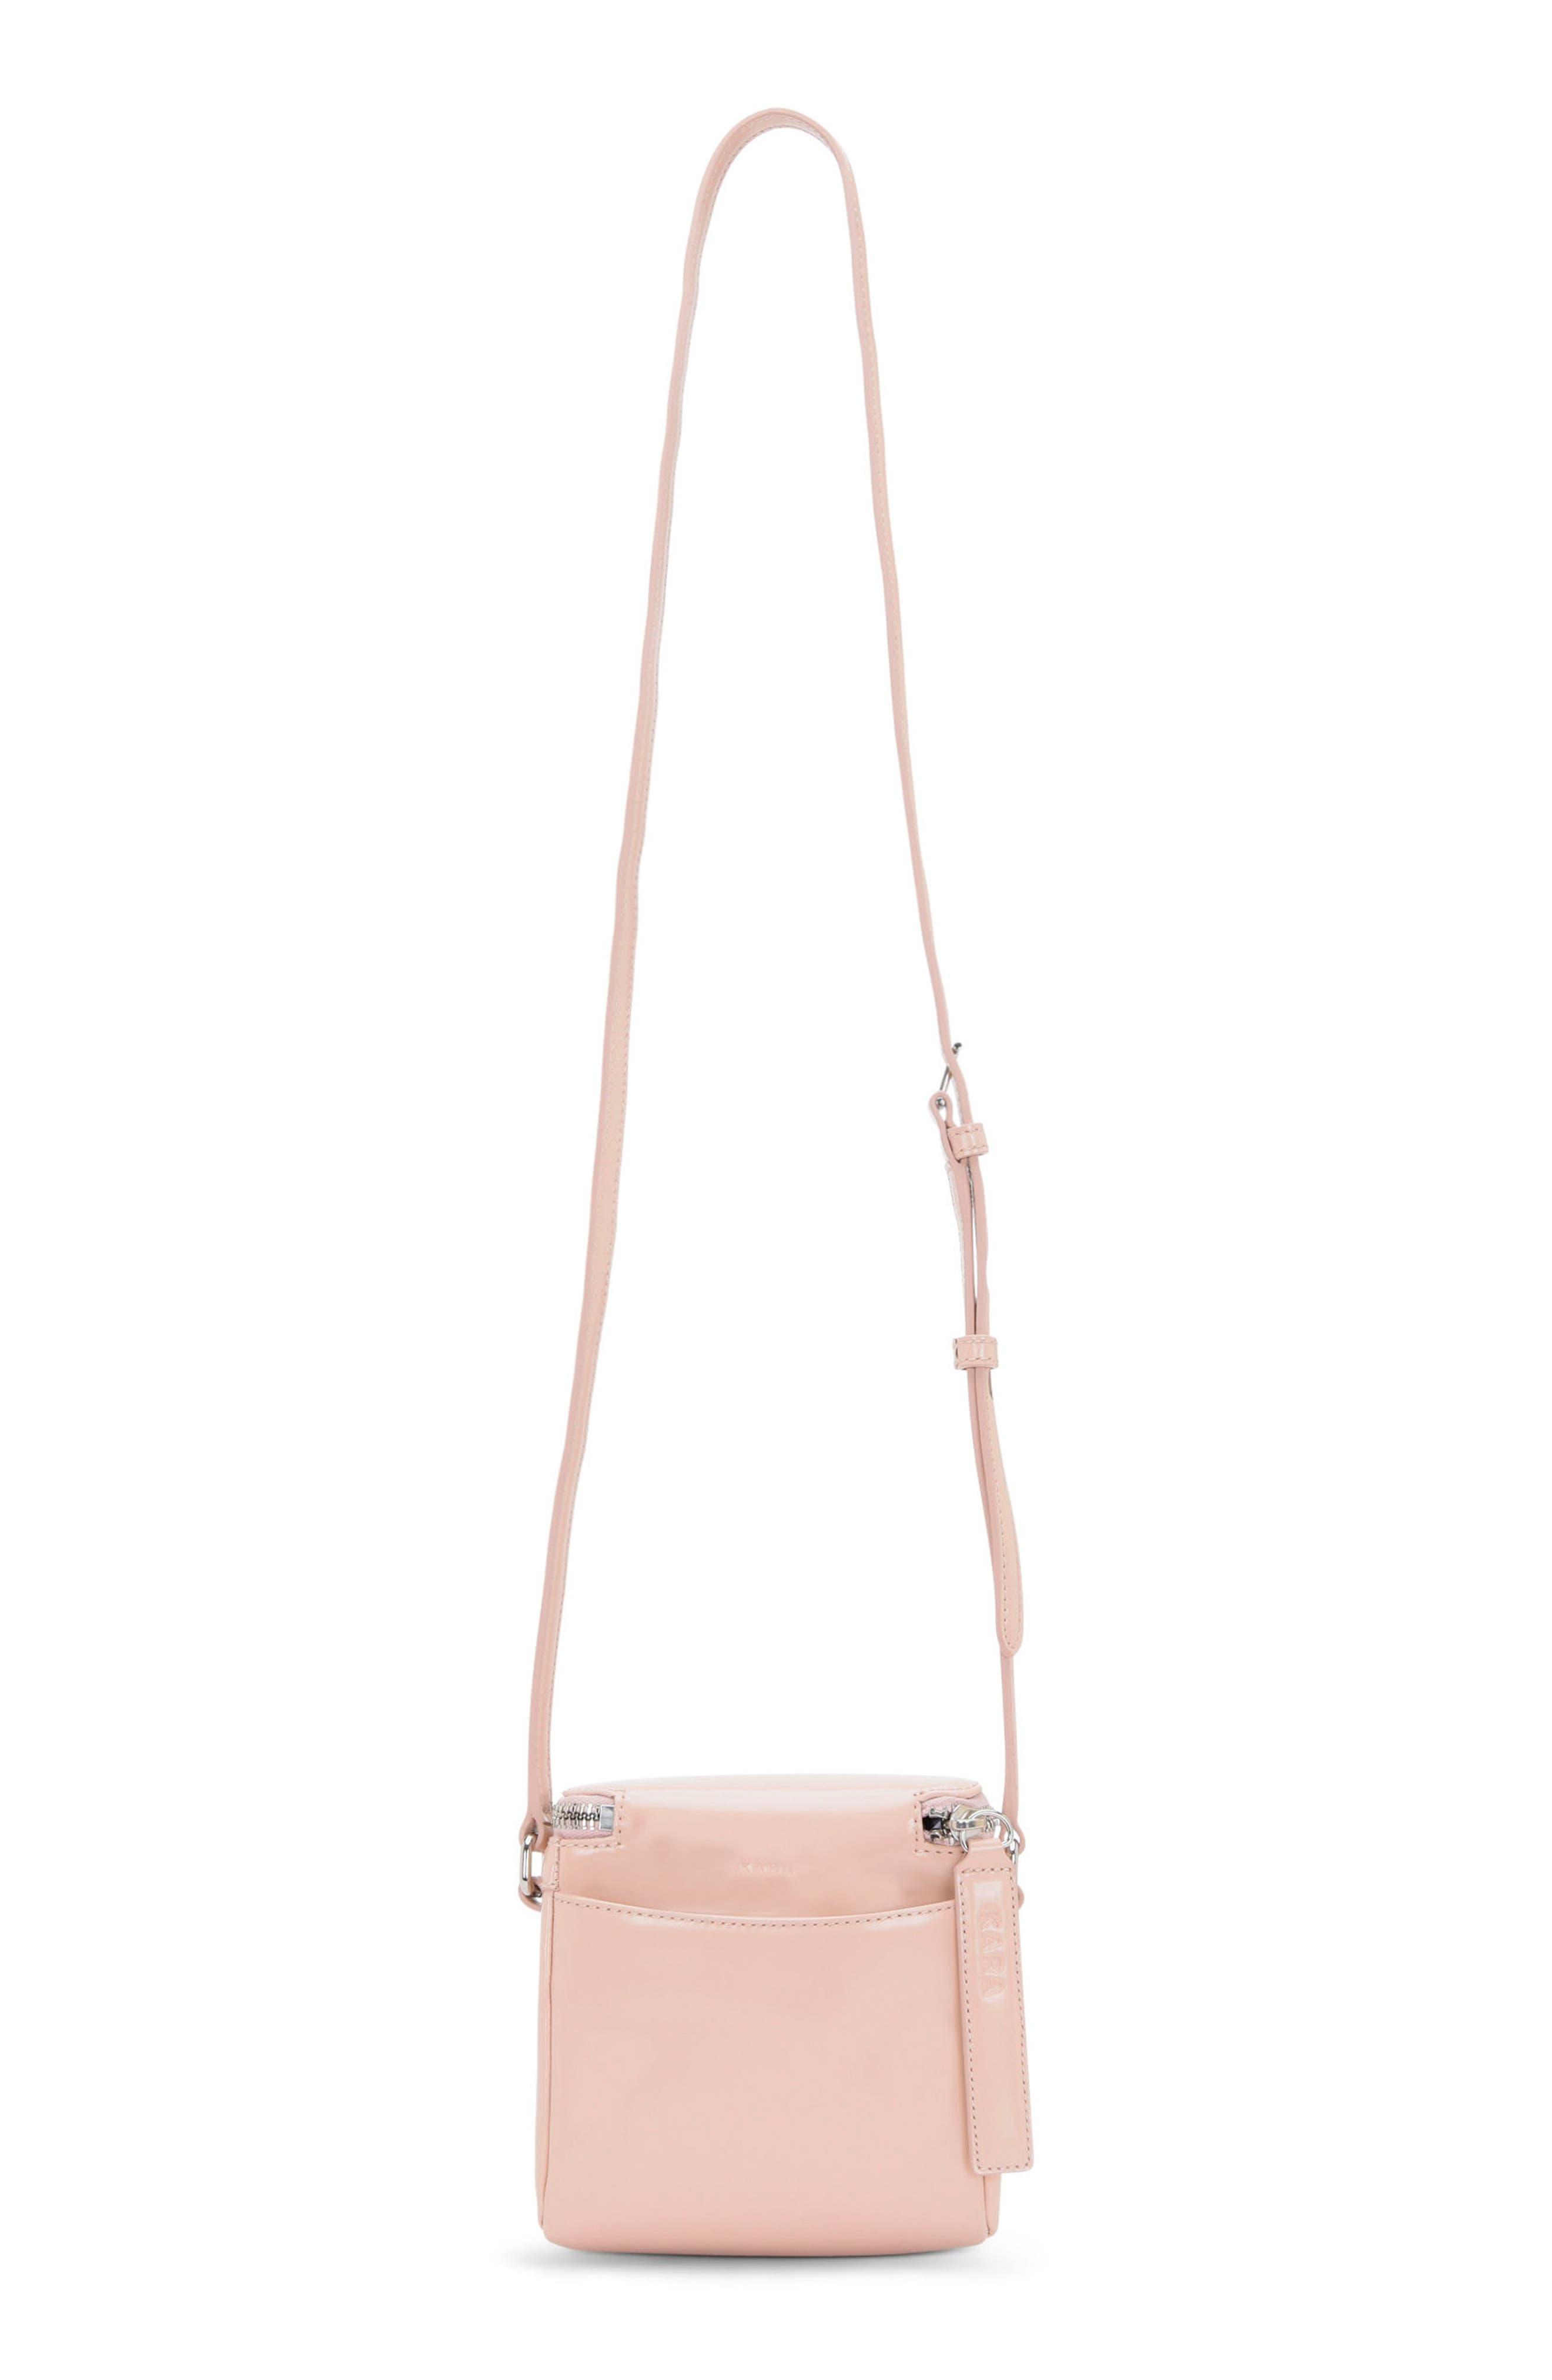 Stowaway Leather Crossbody Bag,                             Alternate thumbnail 2, color,                             Dusty Pink